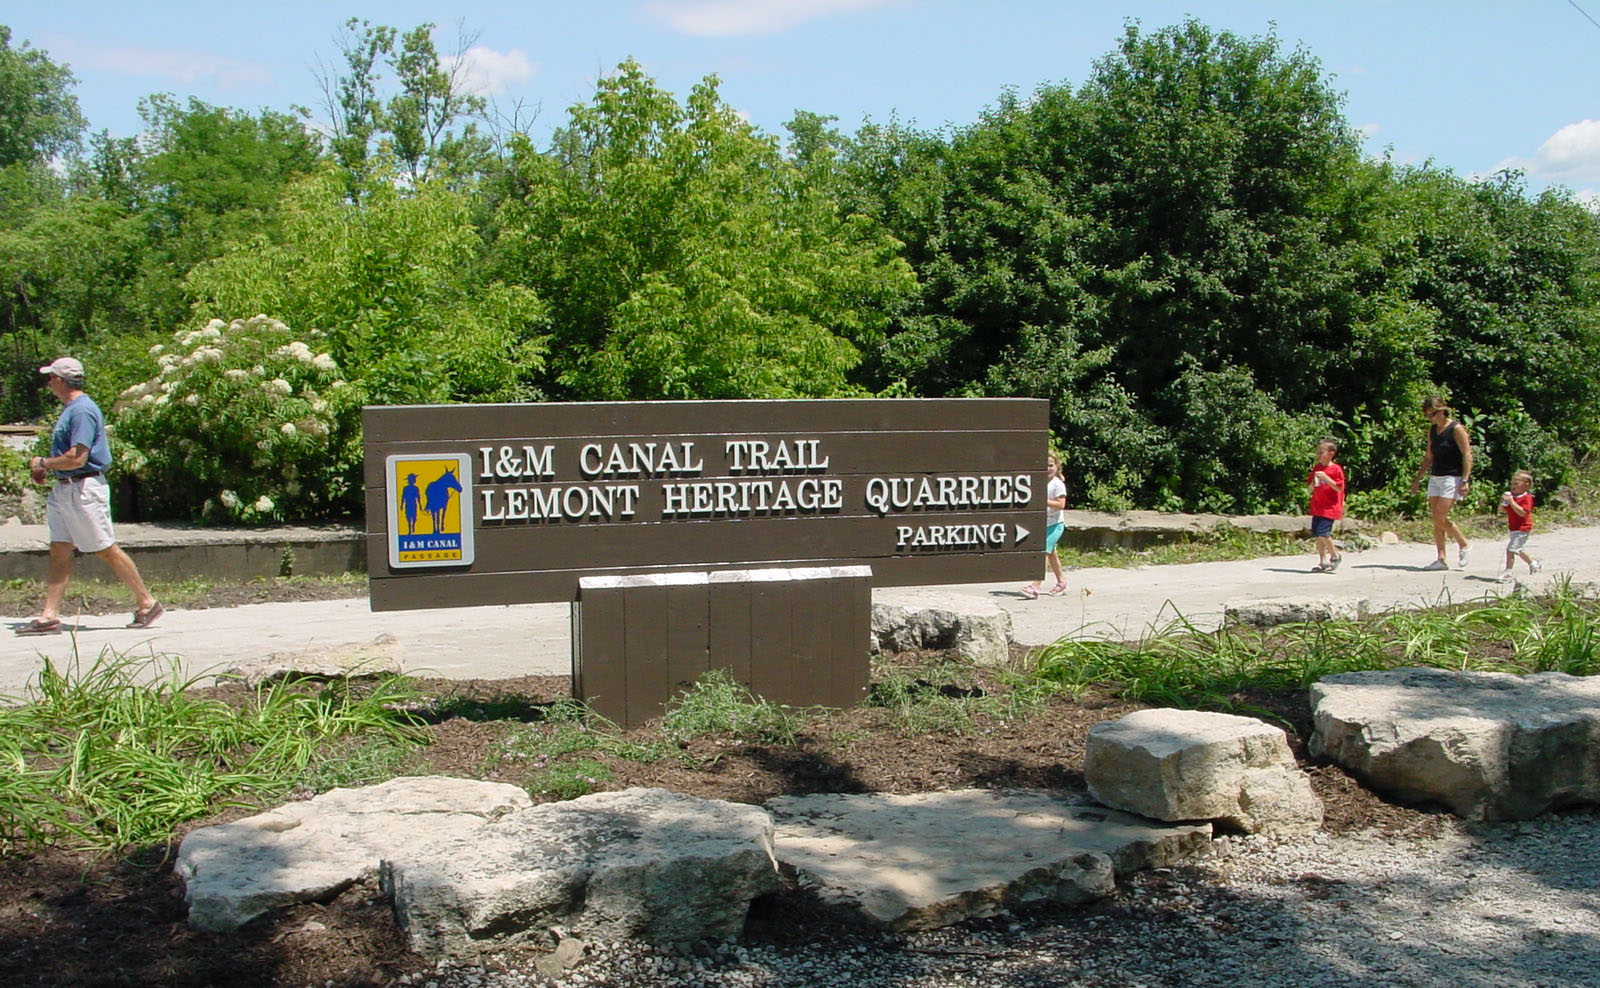 Miles of walking trails in the Lemont Heritage Quarries Recreation Area provide recreational opportunities along the historic Illinois and Michigan Canal